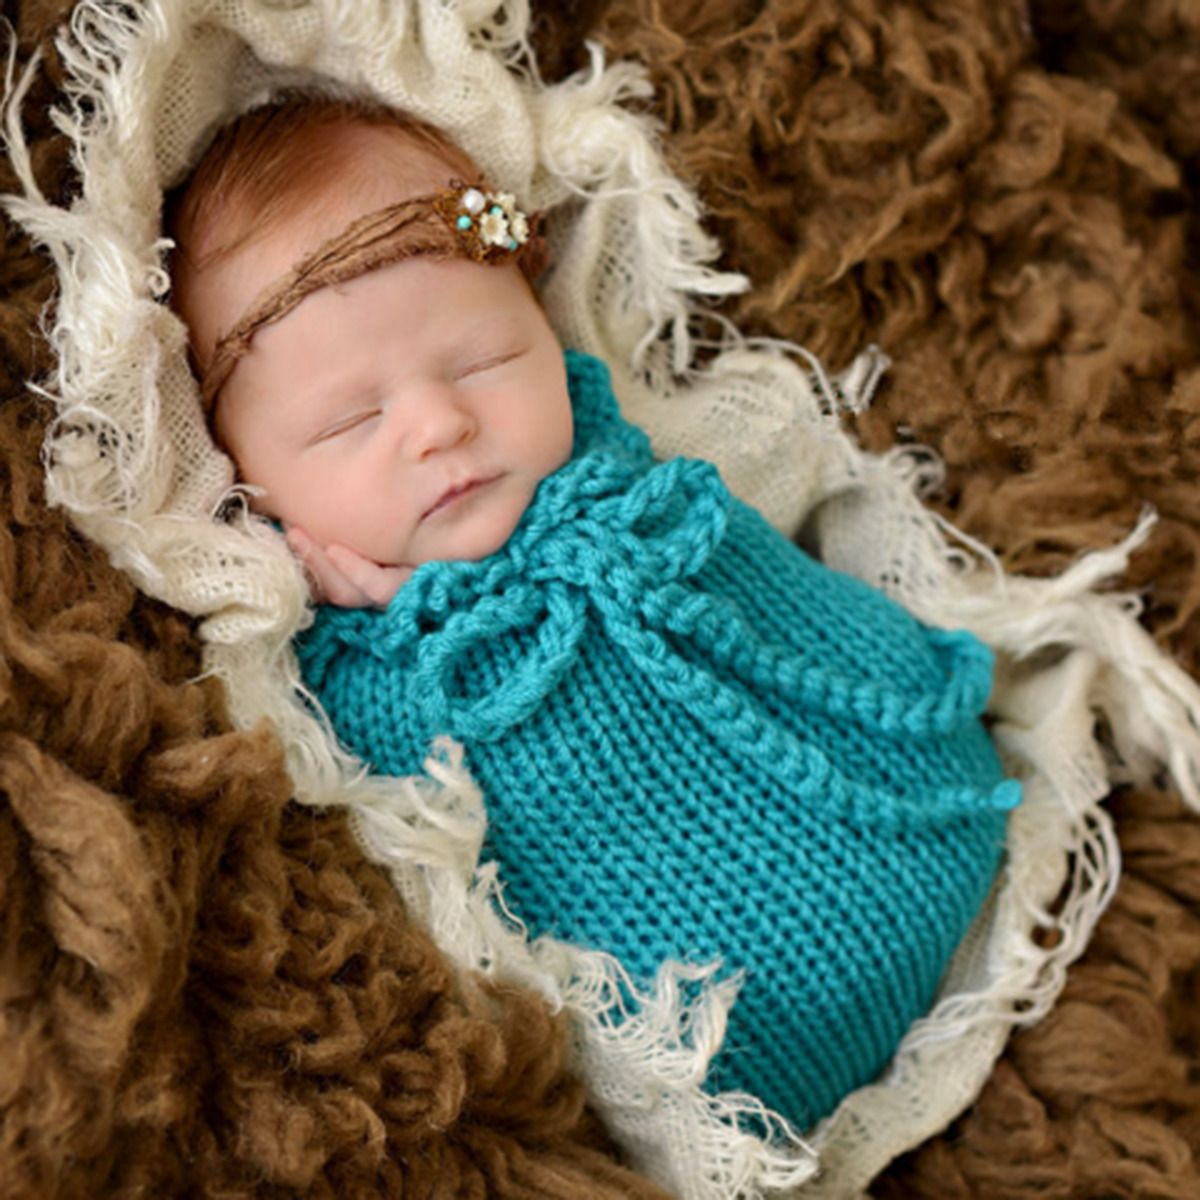 4.99 - Newborn Baby Photography Photo Props Infant Swaddle Wrap Blanket  Sleeping Bag  ebay  Home   Garden 763247999f1d